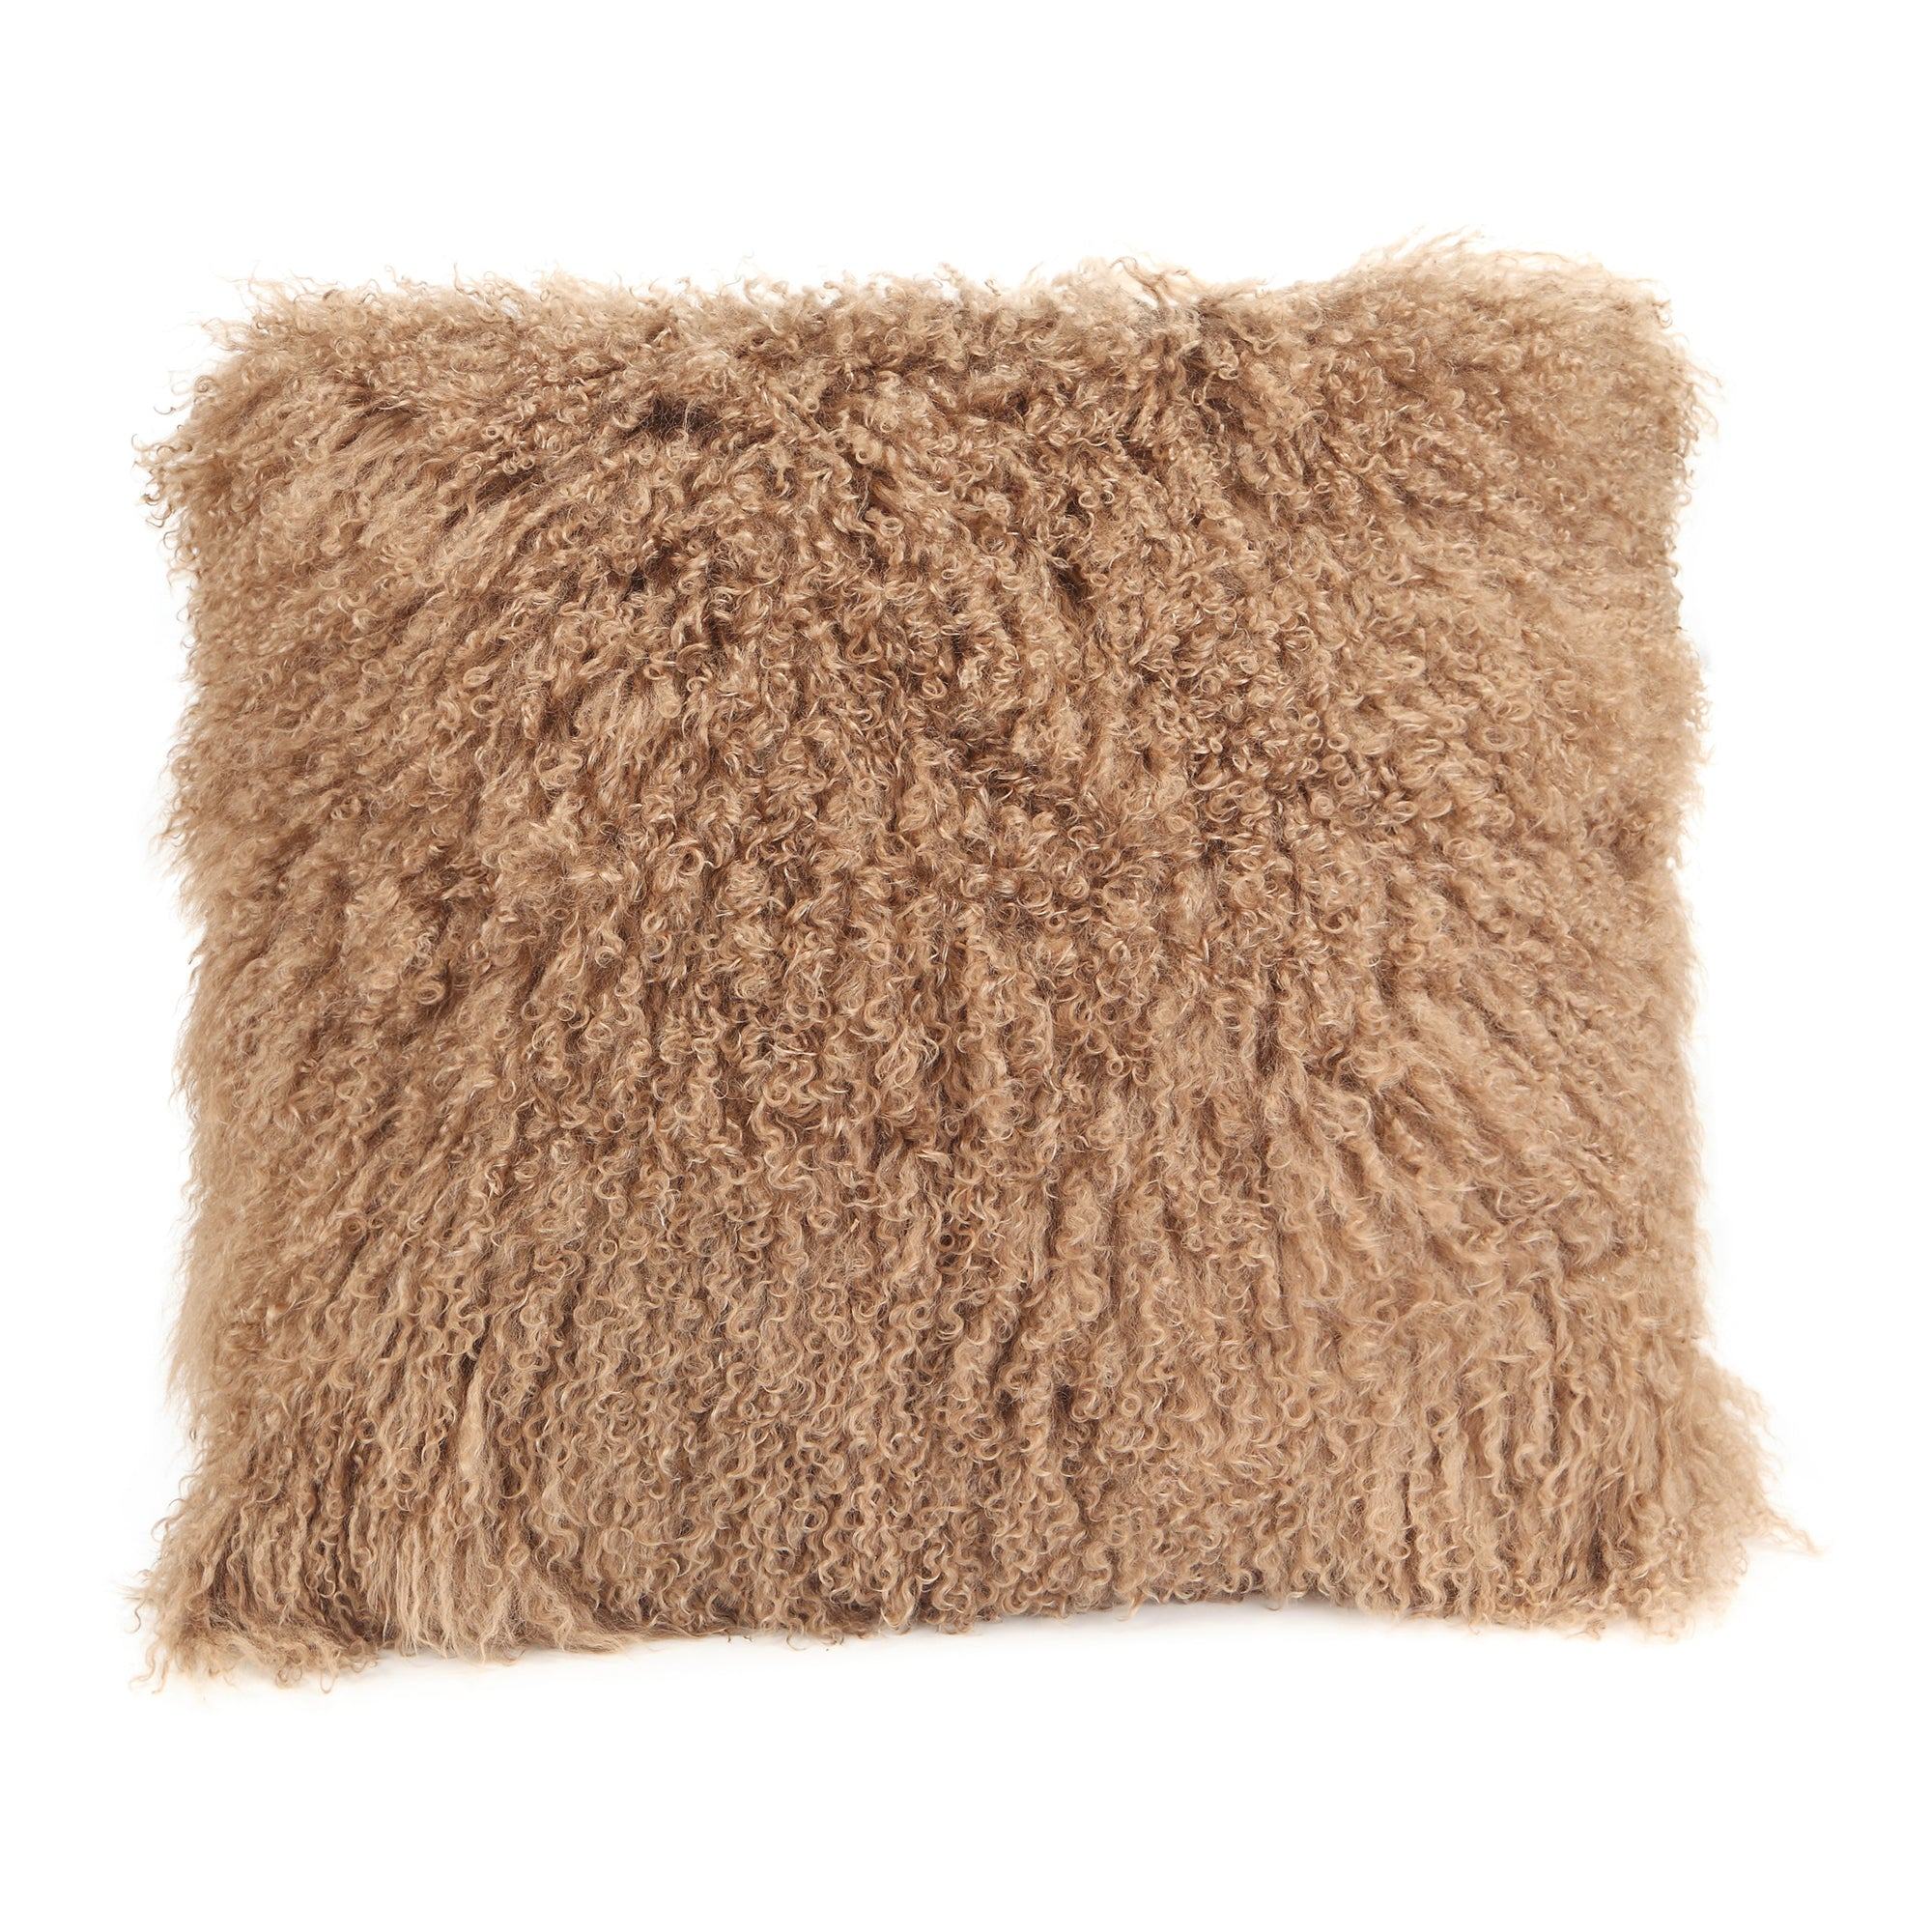 Lamb fur pillow large, natural - Tops-Dress